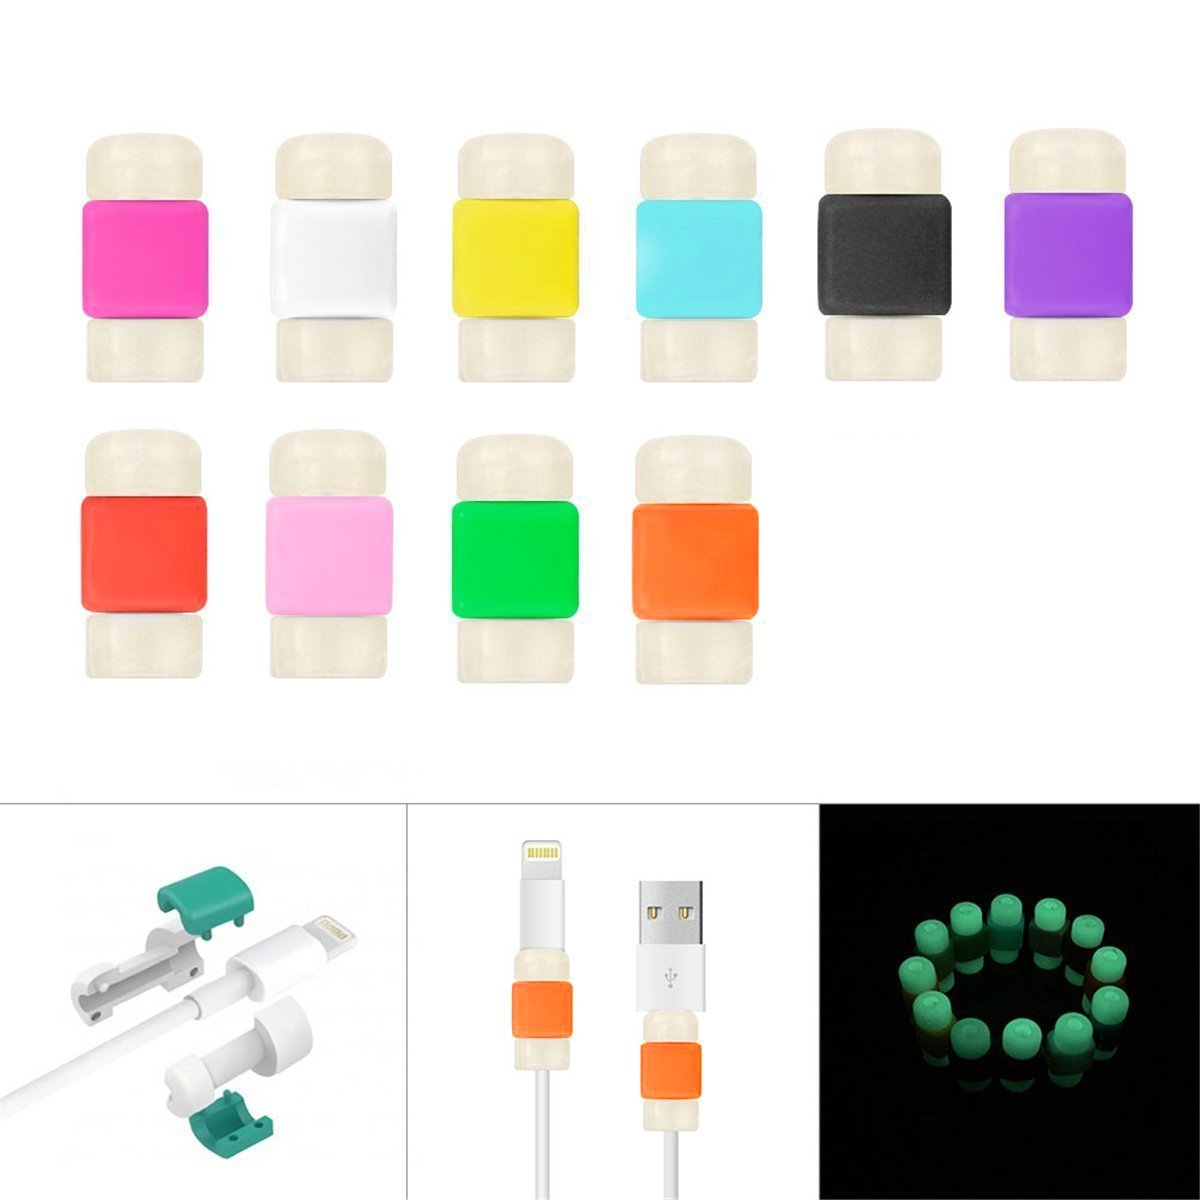 BUTEFO 2 Pieces Charging Cable Protector Saver Apple iPhone USB Lightning Cable Protector Visible Glow in the Dark (10colors)